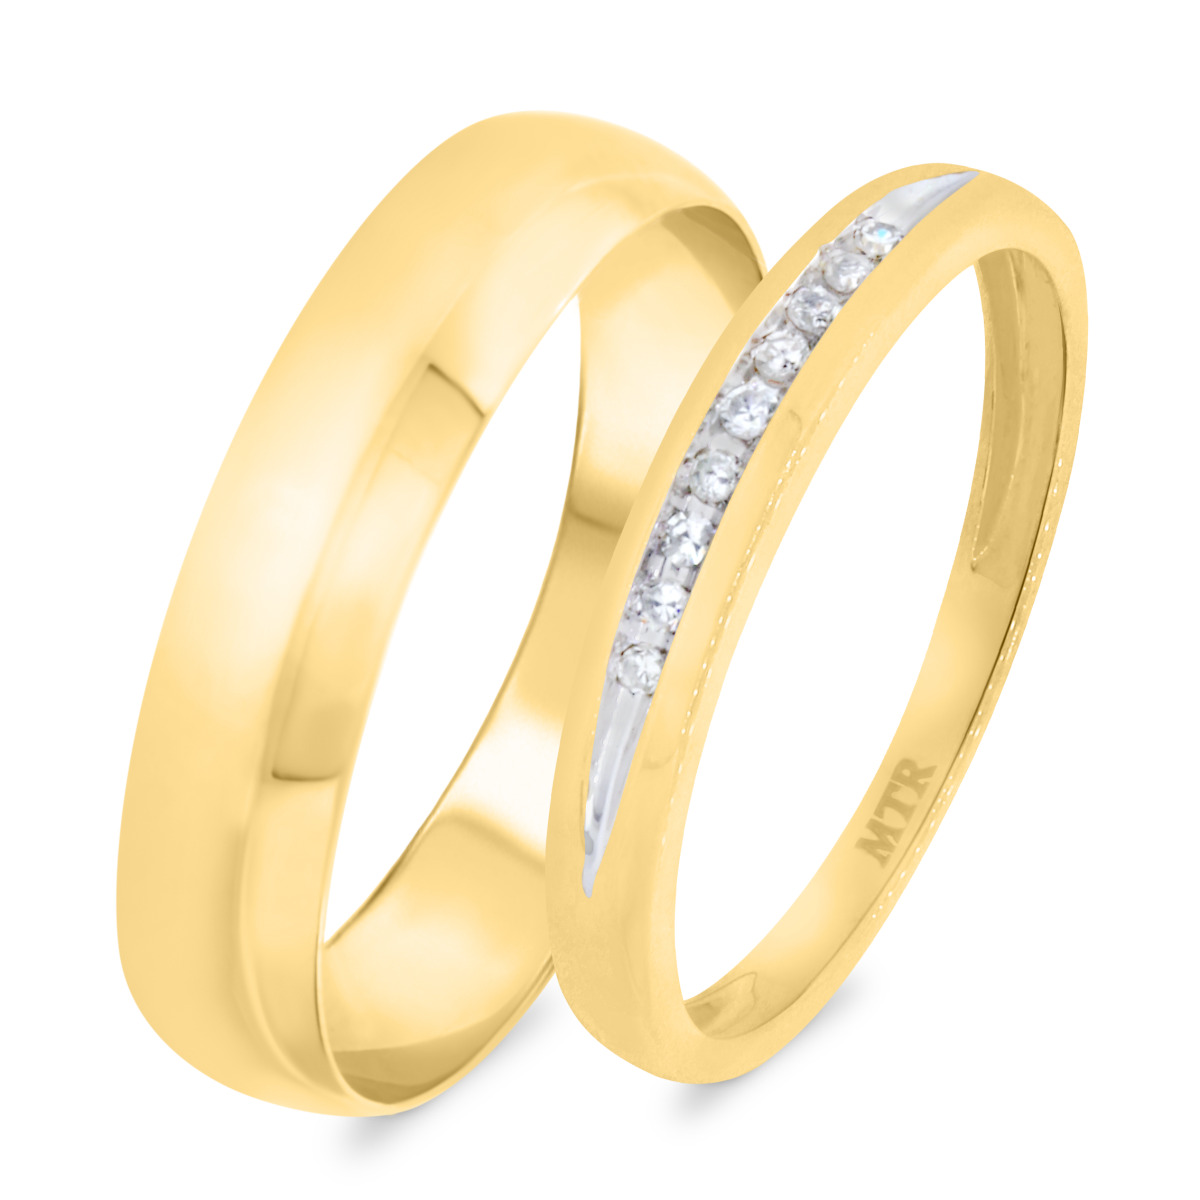 1/15 Carat T.W. Diamond Matching Wedding Band Set 10K Yellow Gold